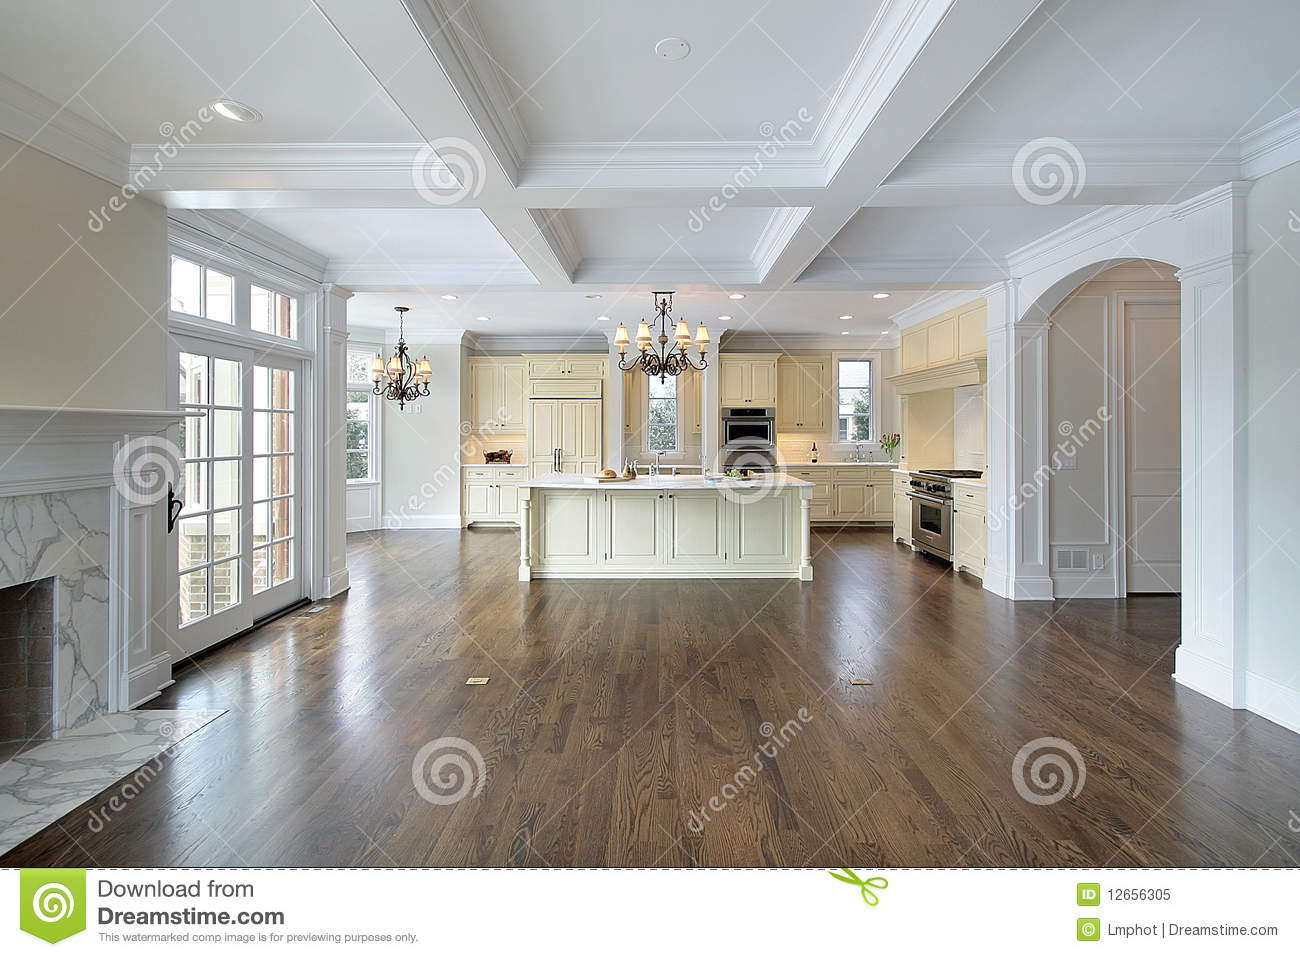 Kitchen Family Room kitchen and family room royalty free stock photo - image: 12656305